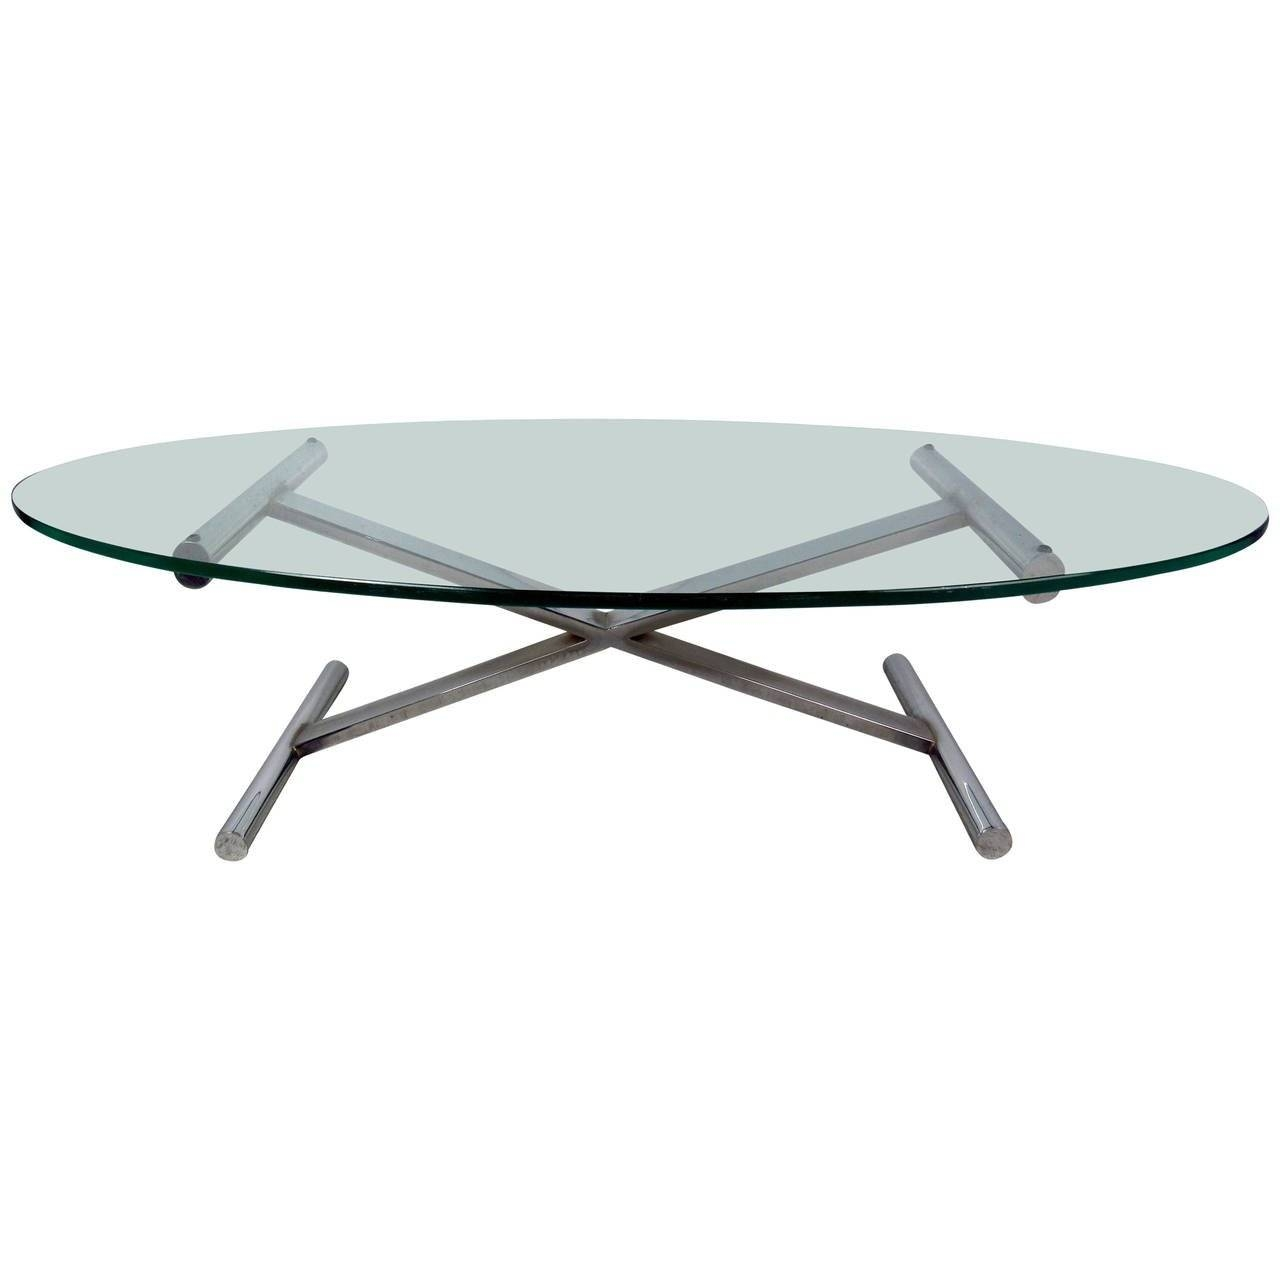 Oval Shaped Glass Top Coffee Table With Chrome Base For Sale At with regard to Coffee Tables With Oval Shape (Image 24 of 30)